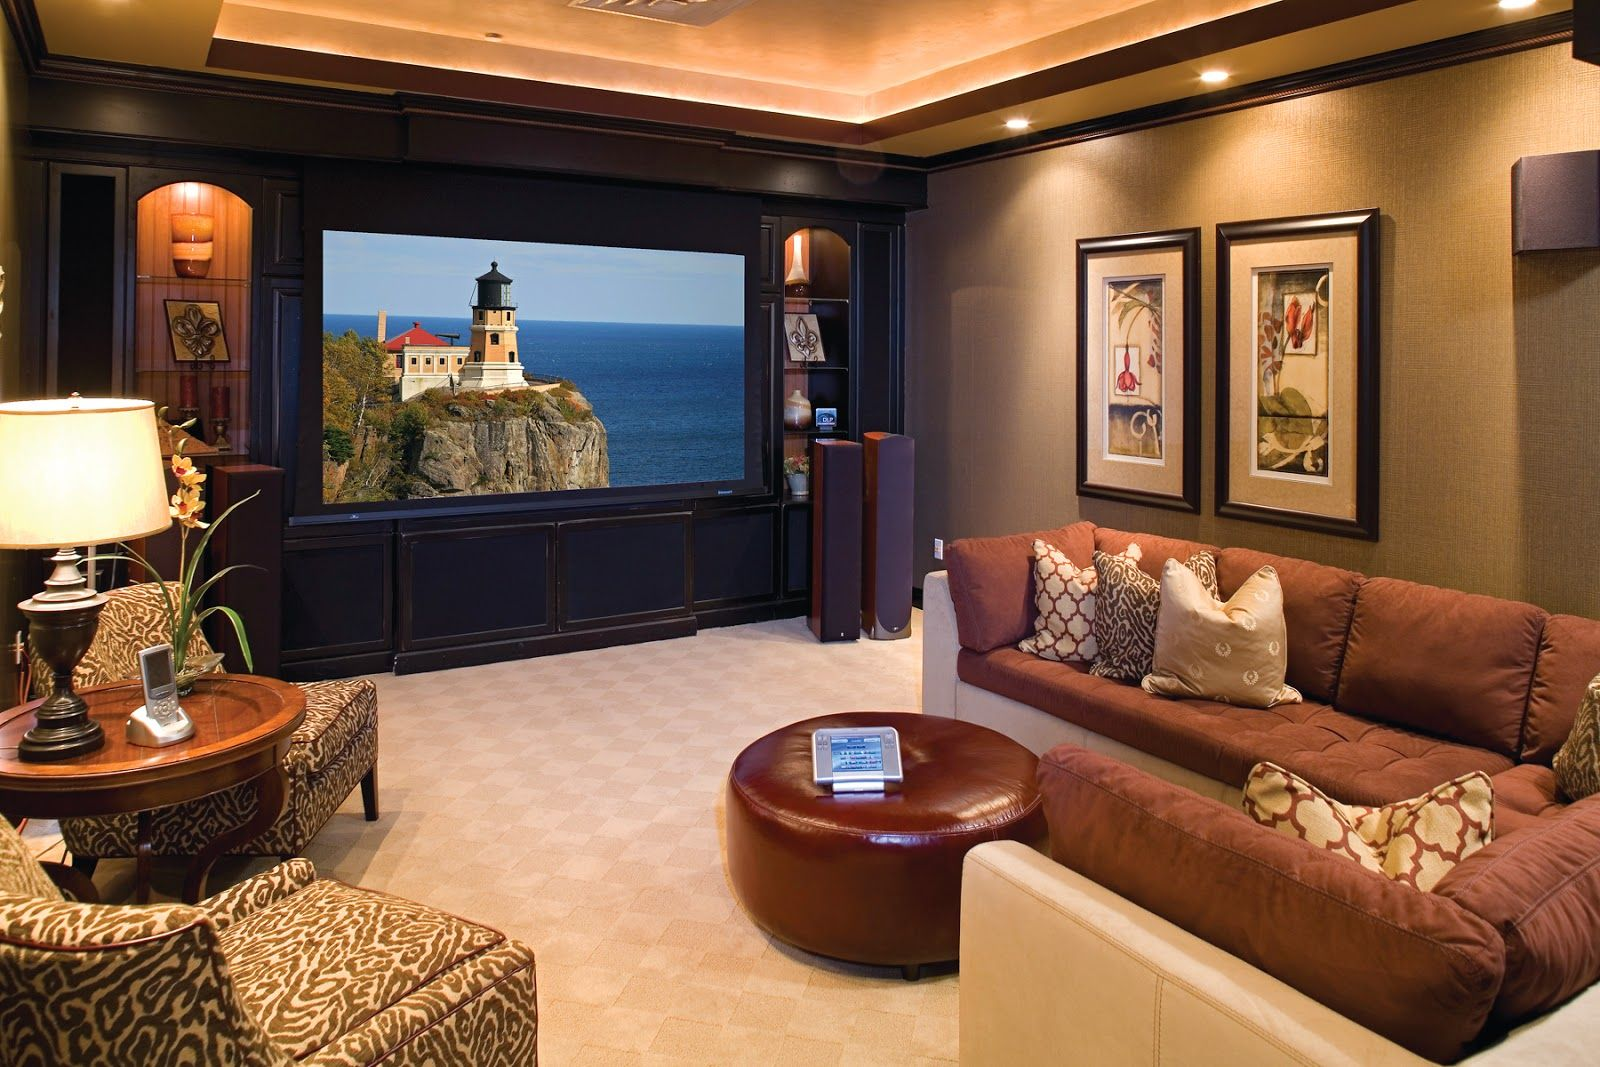 small resolution of cozy basement living room entertainment center basement remodeling kitchen remodeling remodeling ideas